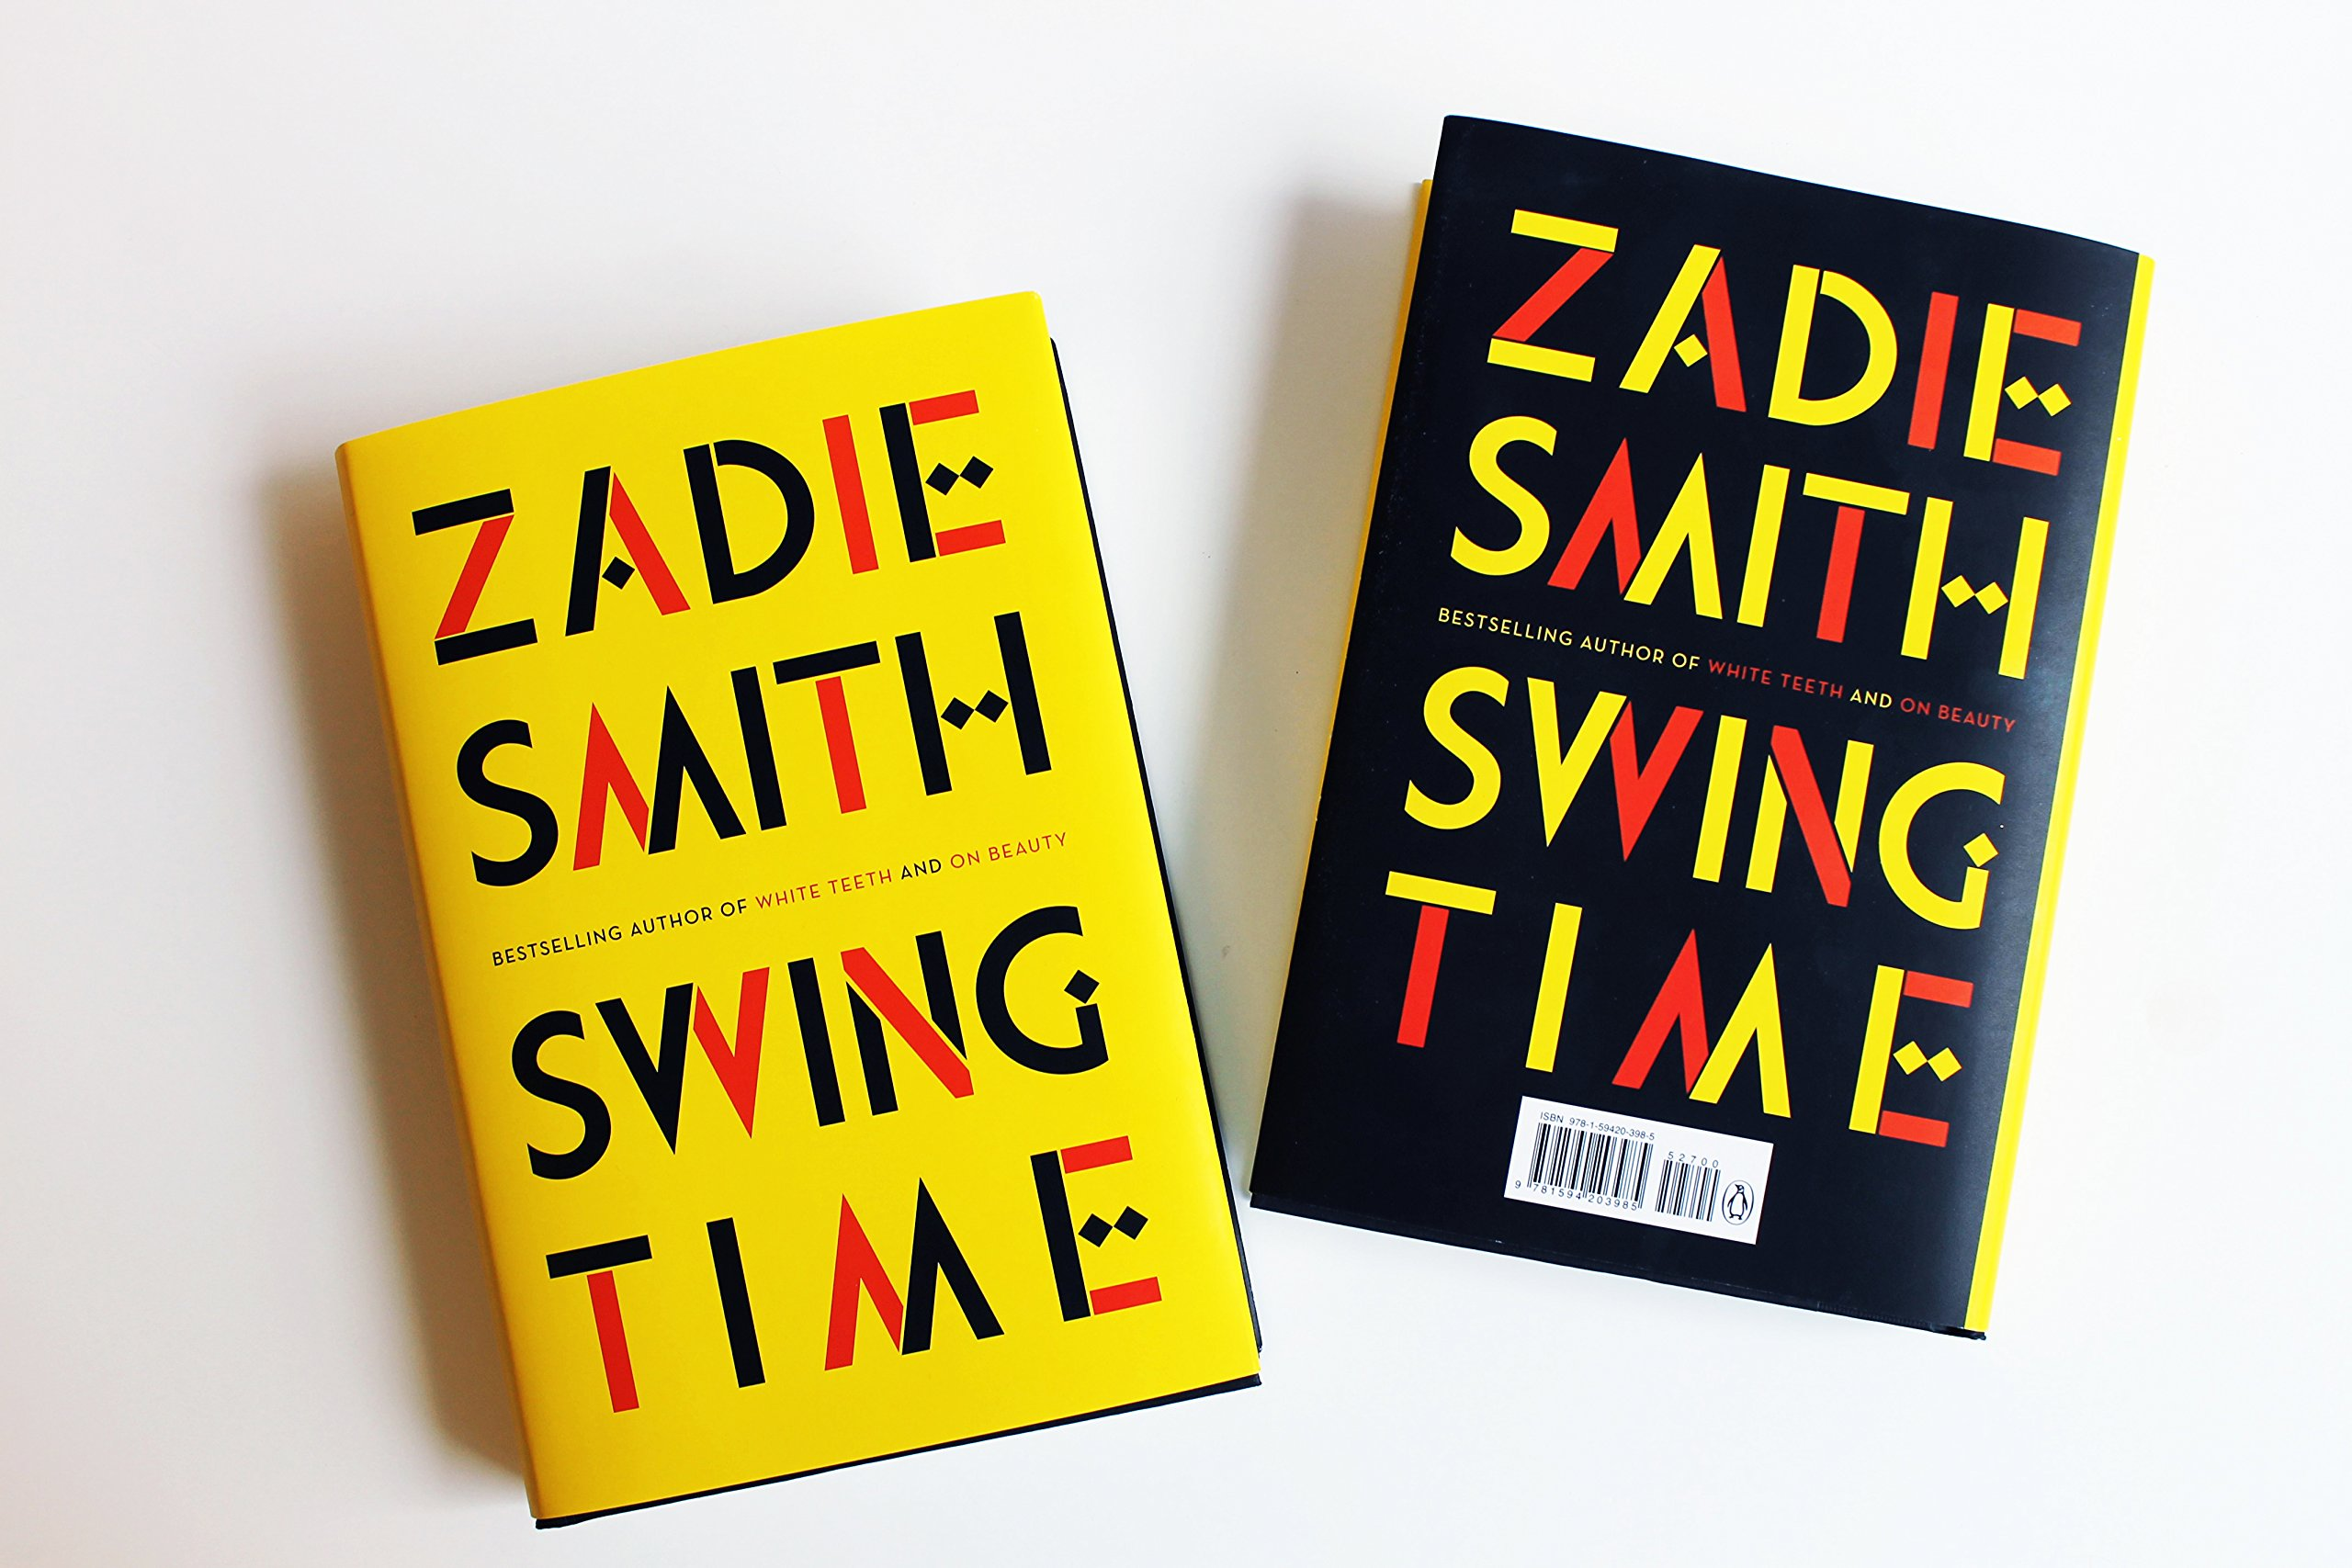 Zadie Smith Swing Time